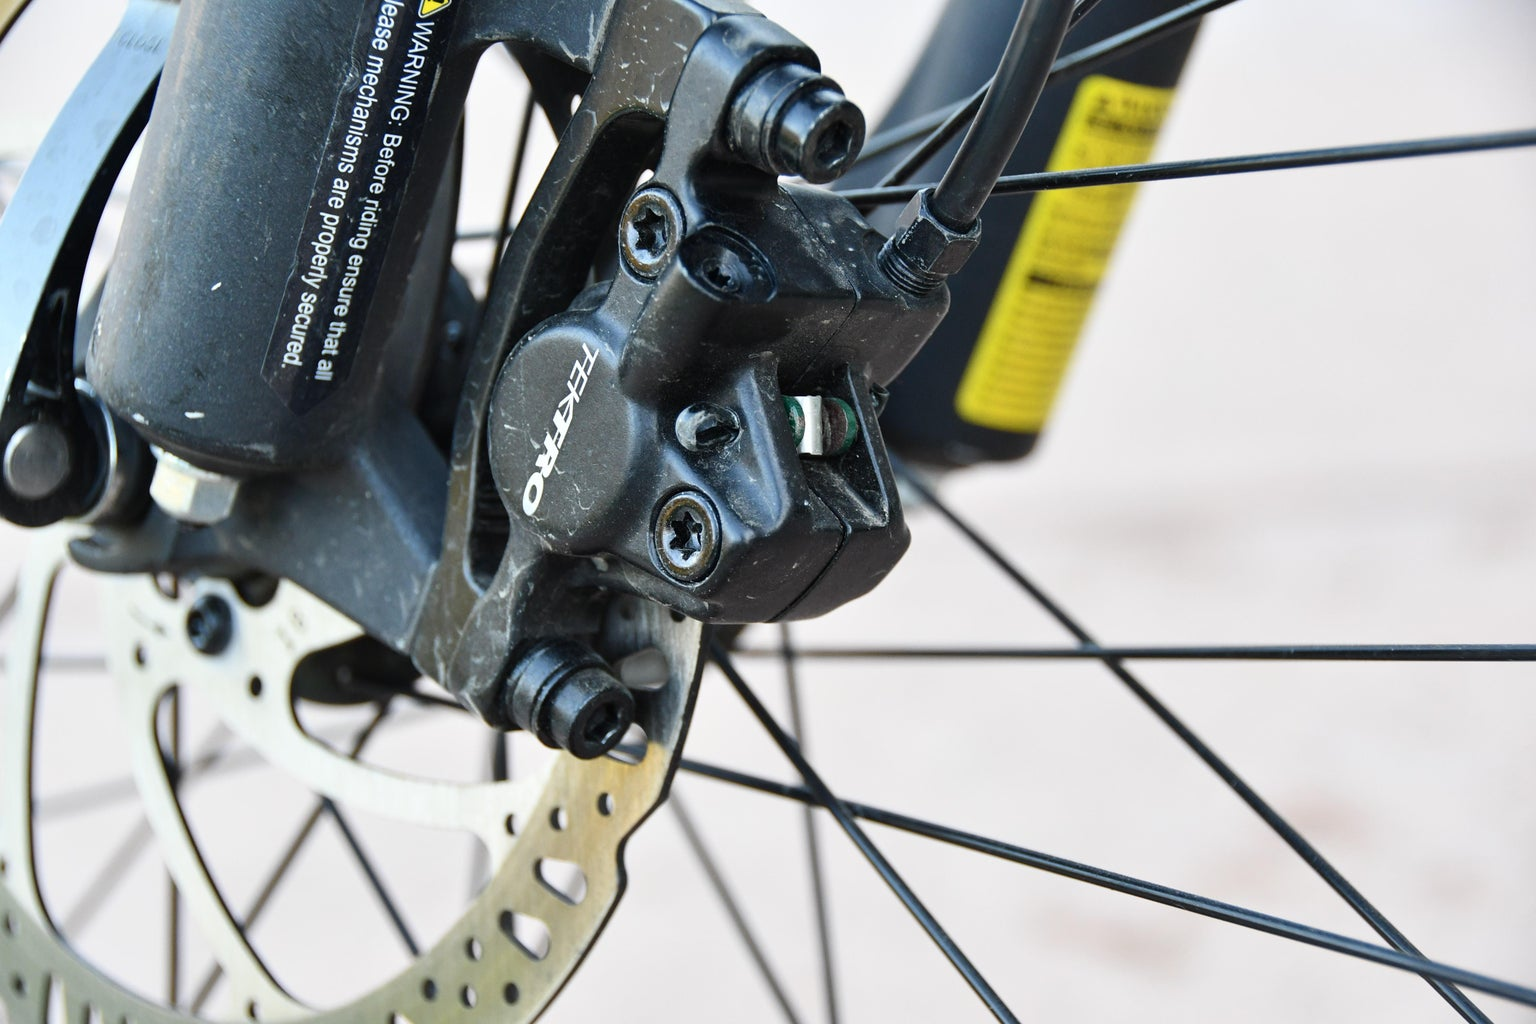 Determine What Brakes and Where the Derailleur Adjustment Screws Are.